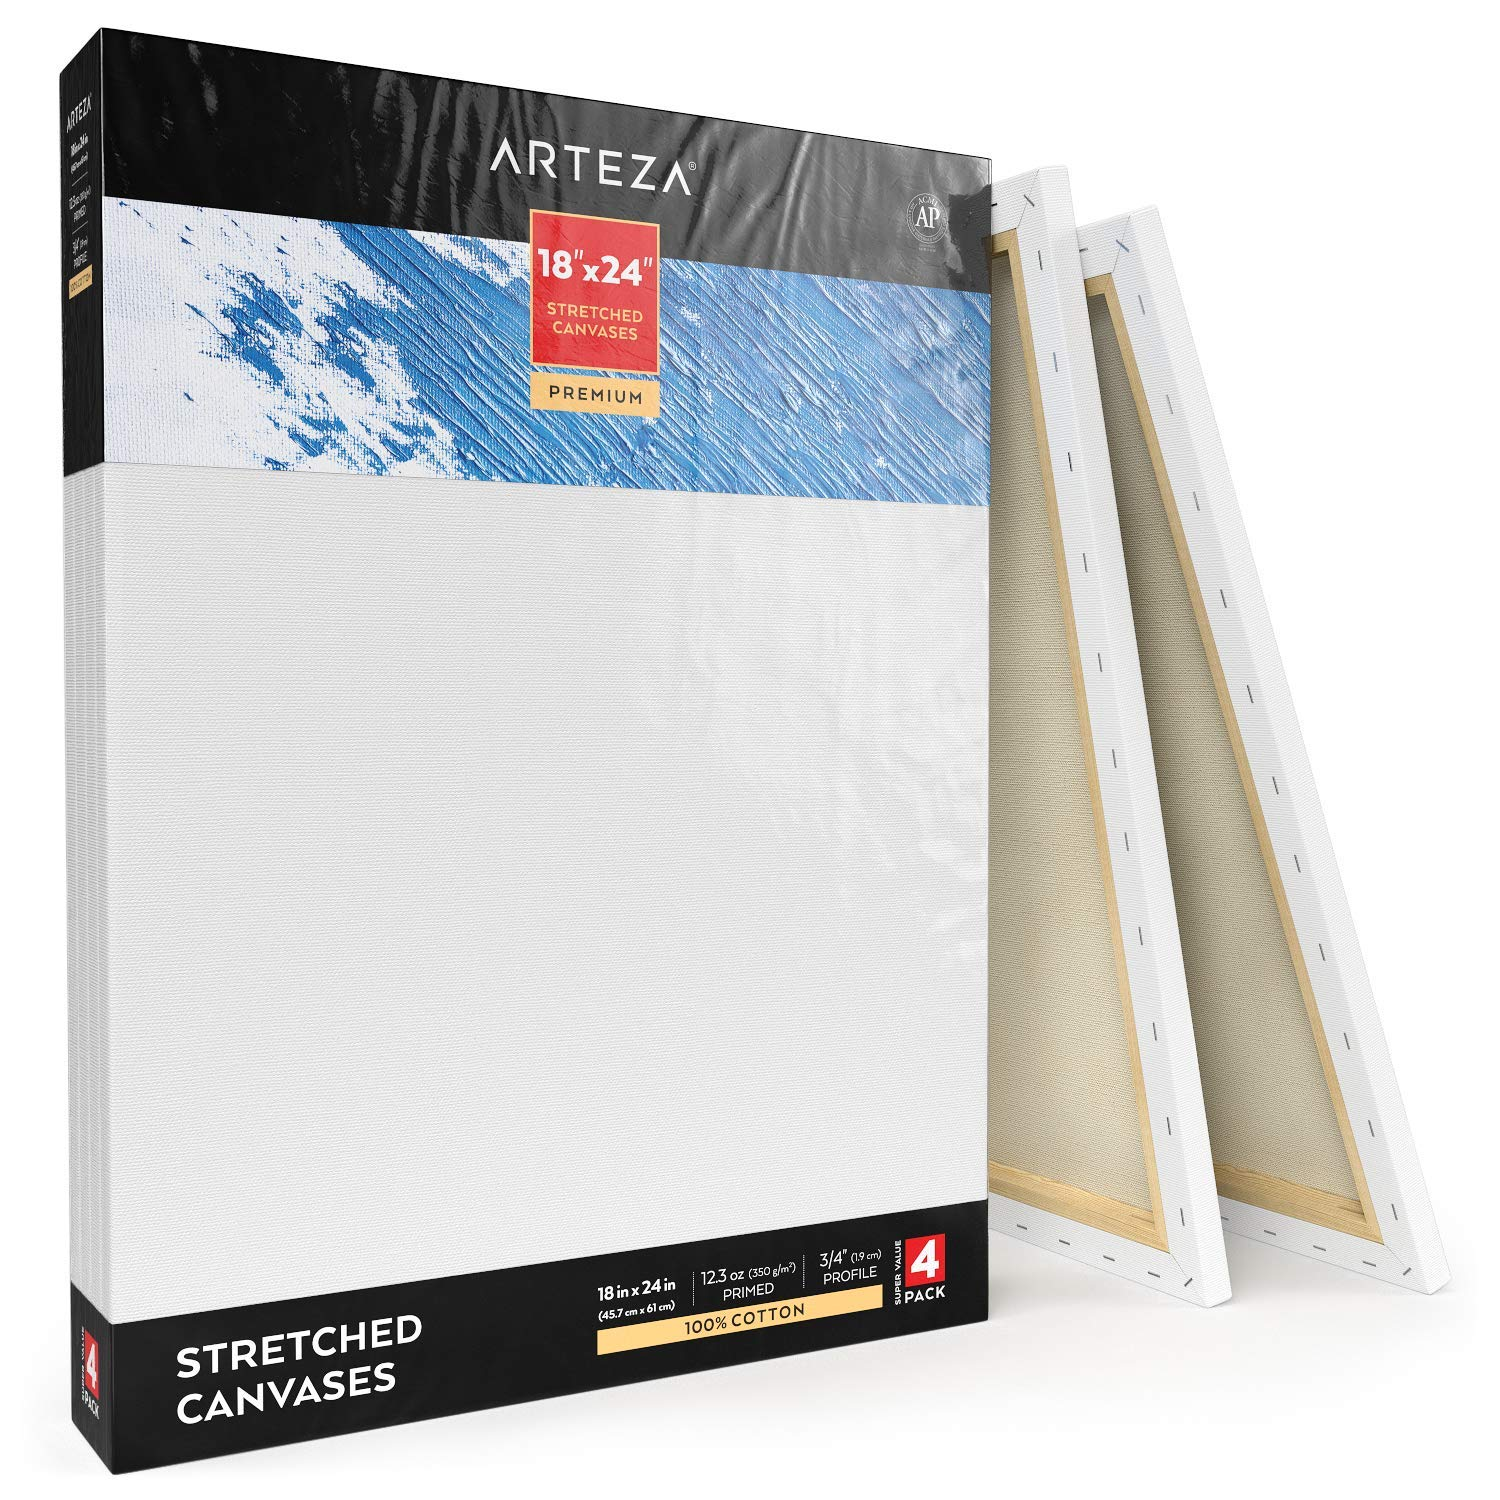 Arteza 18x24'' Professional Stretched White Blank Canvas, Bulk Pack of 4, Primed, 100% Cotton for Painting, Acrylic Pouring, Oil Paint & Wet Art Media, Canvases for Artist, Hobby Painters & Beginner by ARTEZA